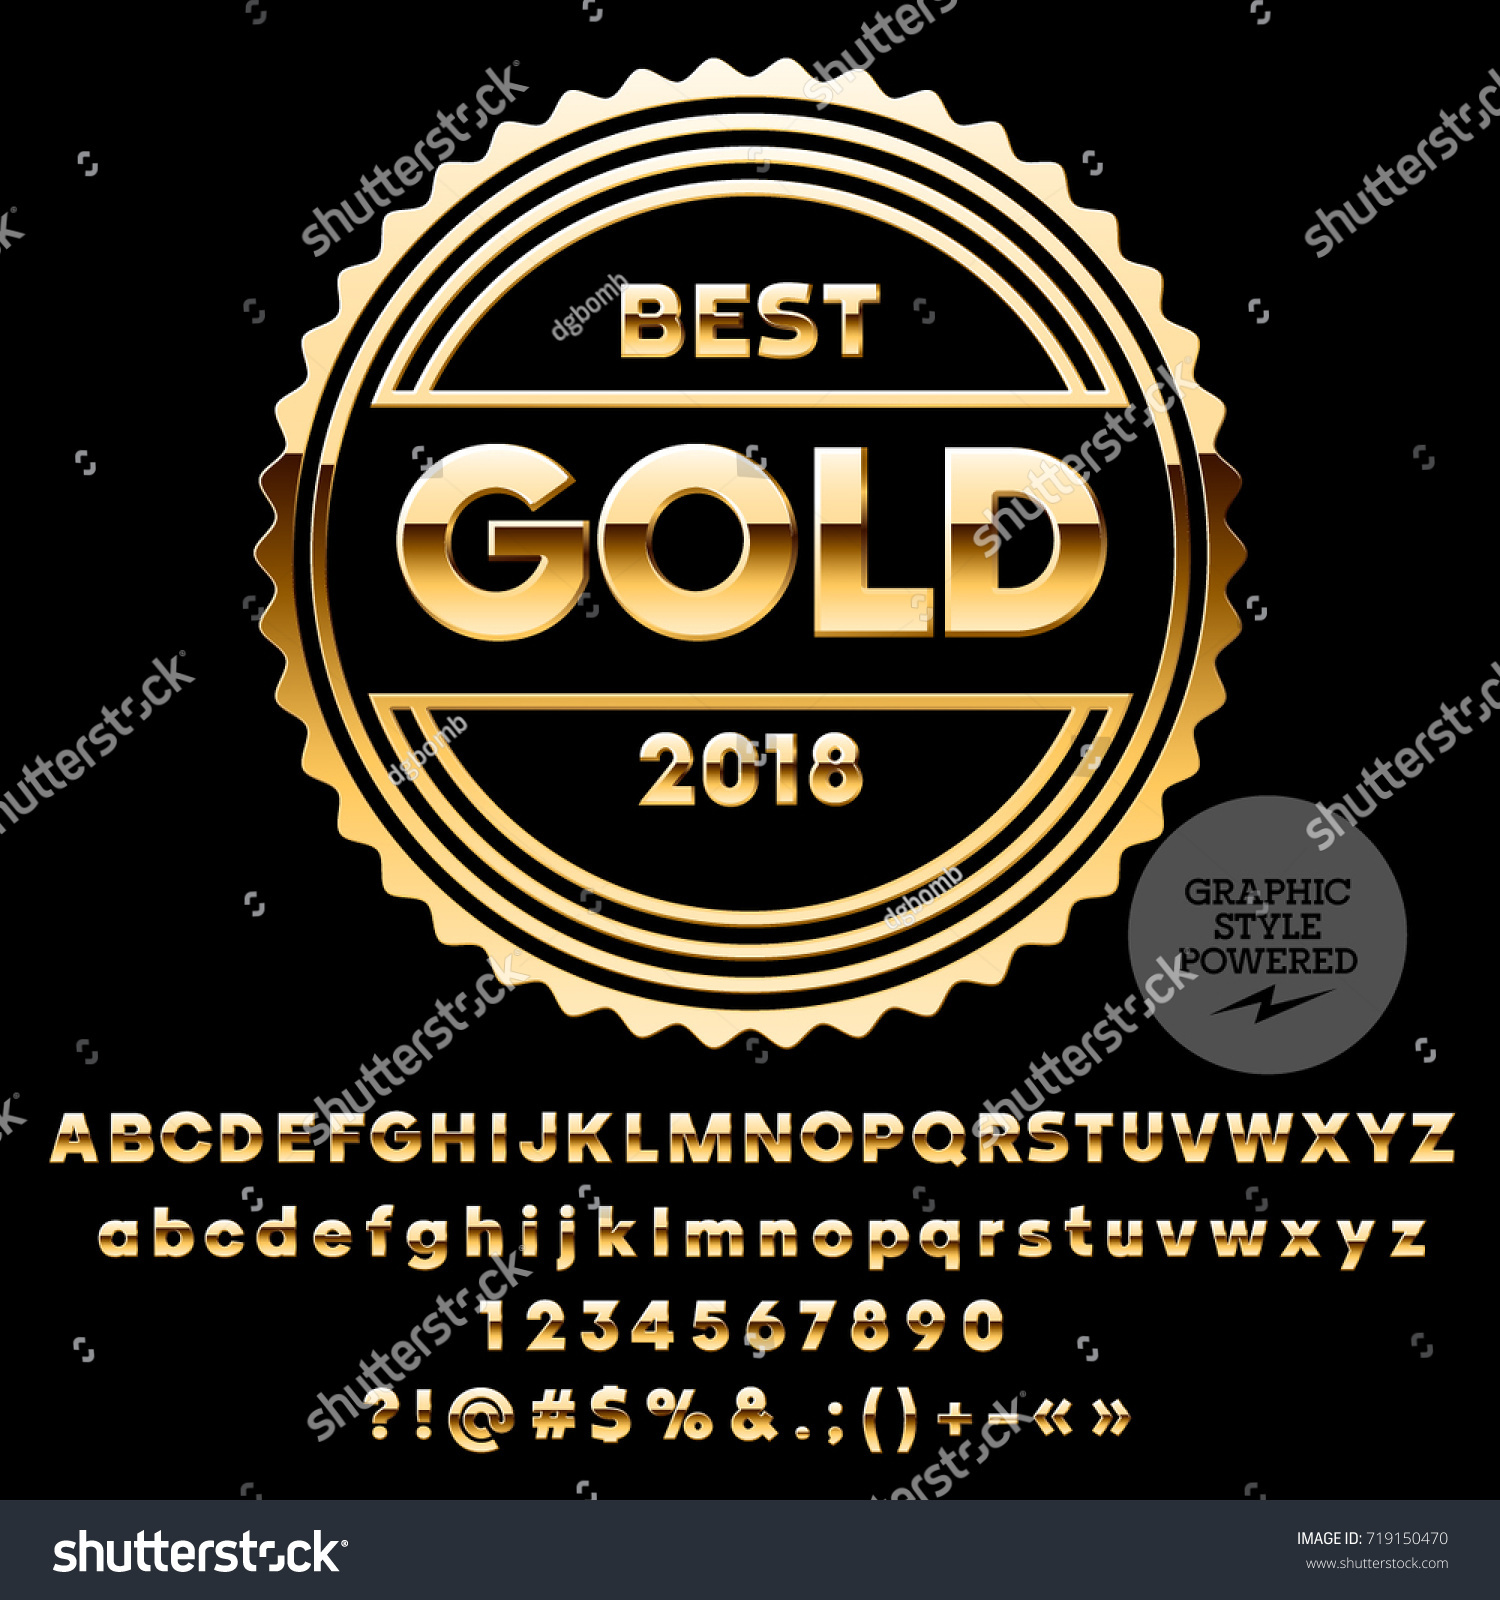 Letters symbols text images symbol and sign ideas vector gold alphabet letters symbols numbers stock vector vector gold alphabet letters symbols numbers chic font biocorpaavc